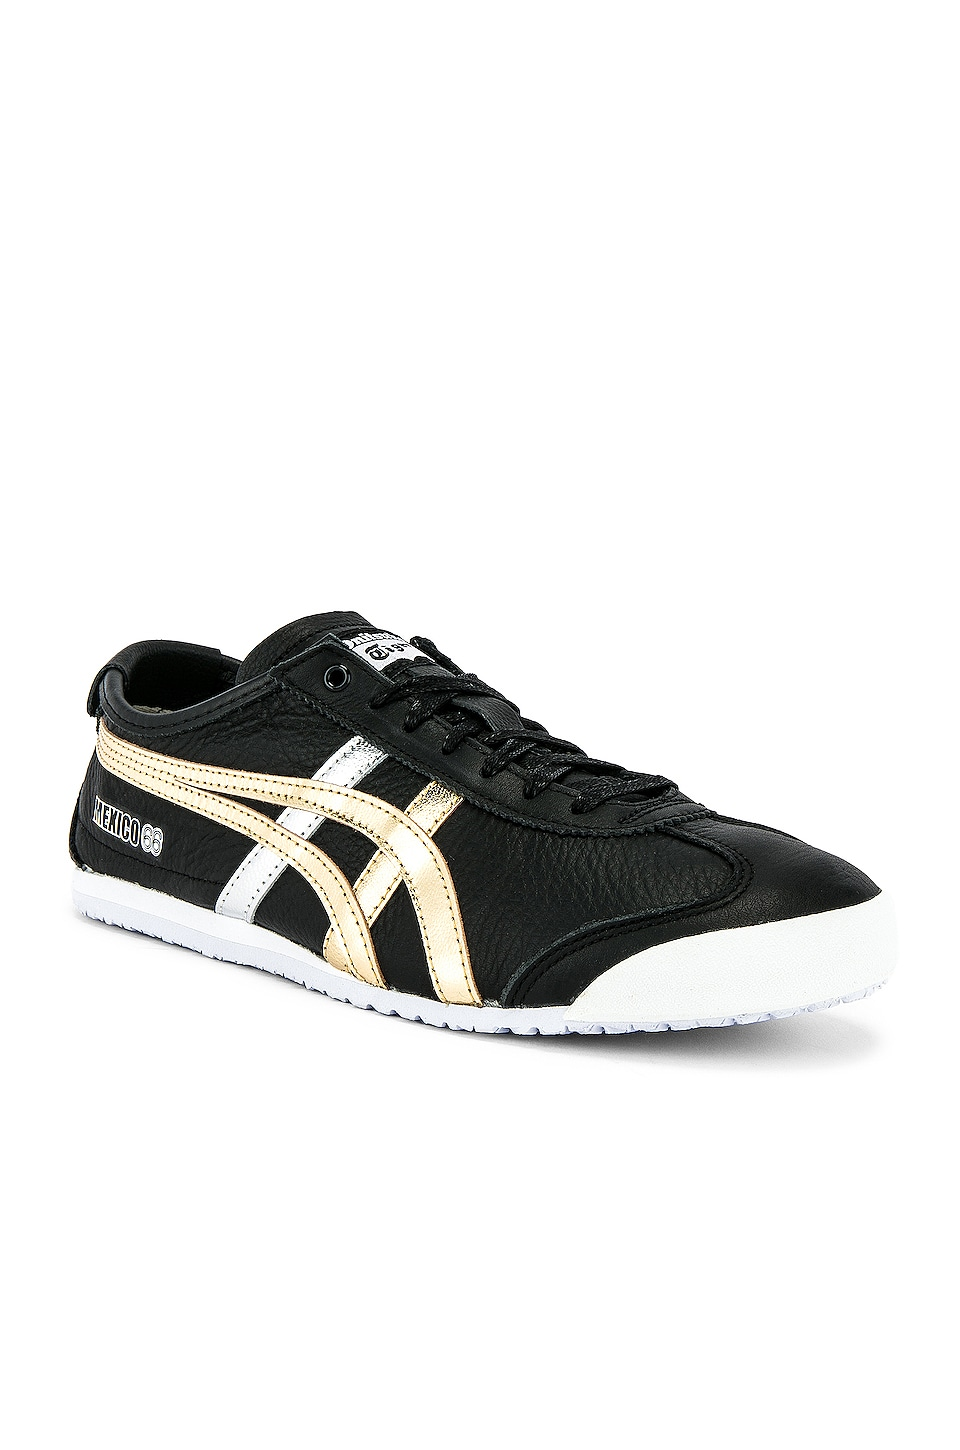 Onitsuka Tiger Mexico 66 in Black & Gold